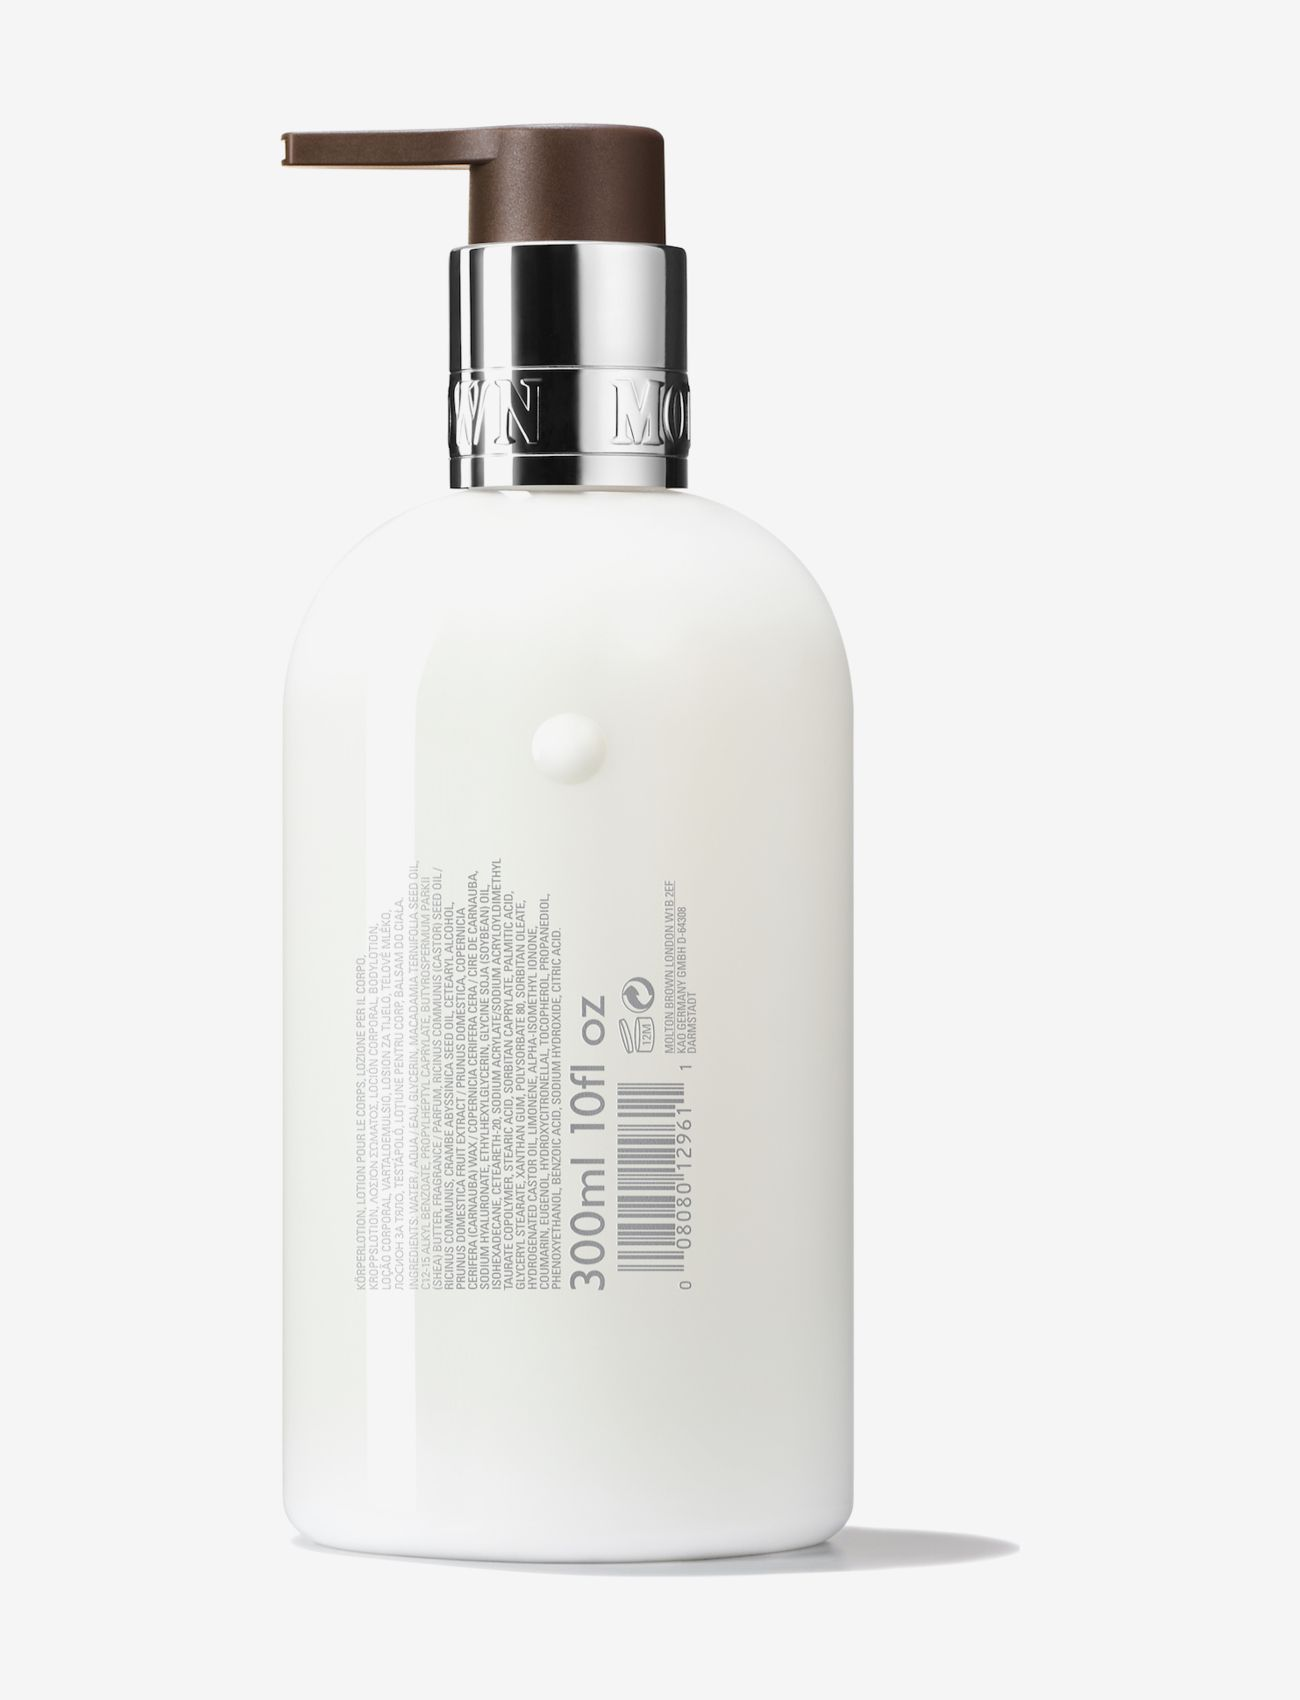 Molton Brown - MUDDLED PLUM BODY LOTION 300ML - vartalovoide - no colour - 1